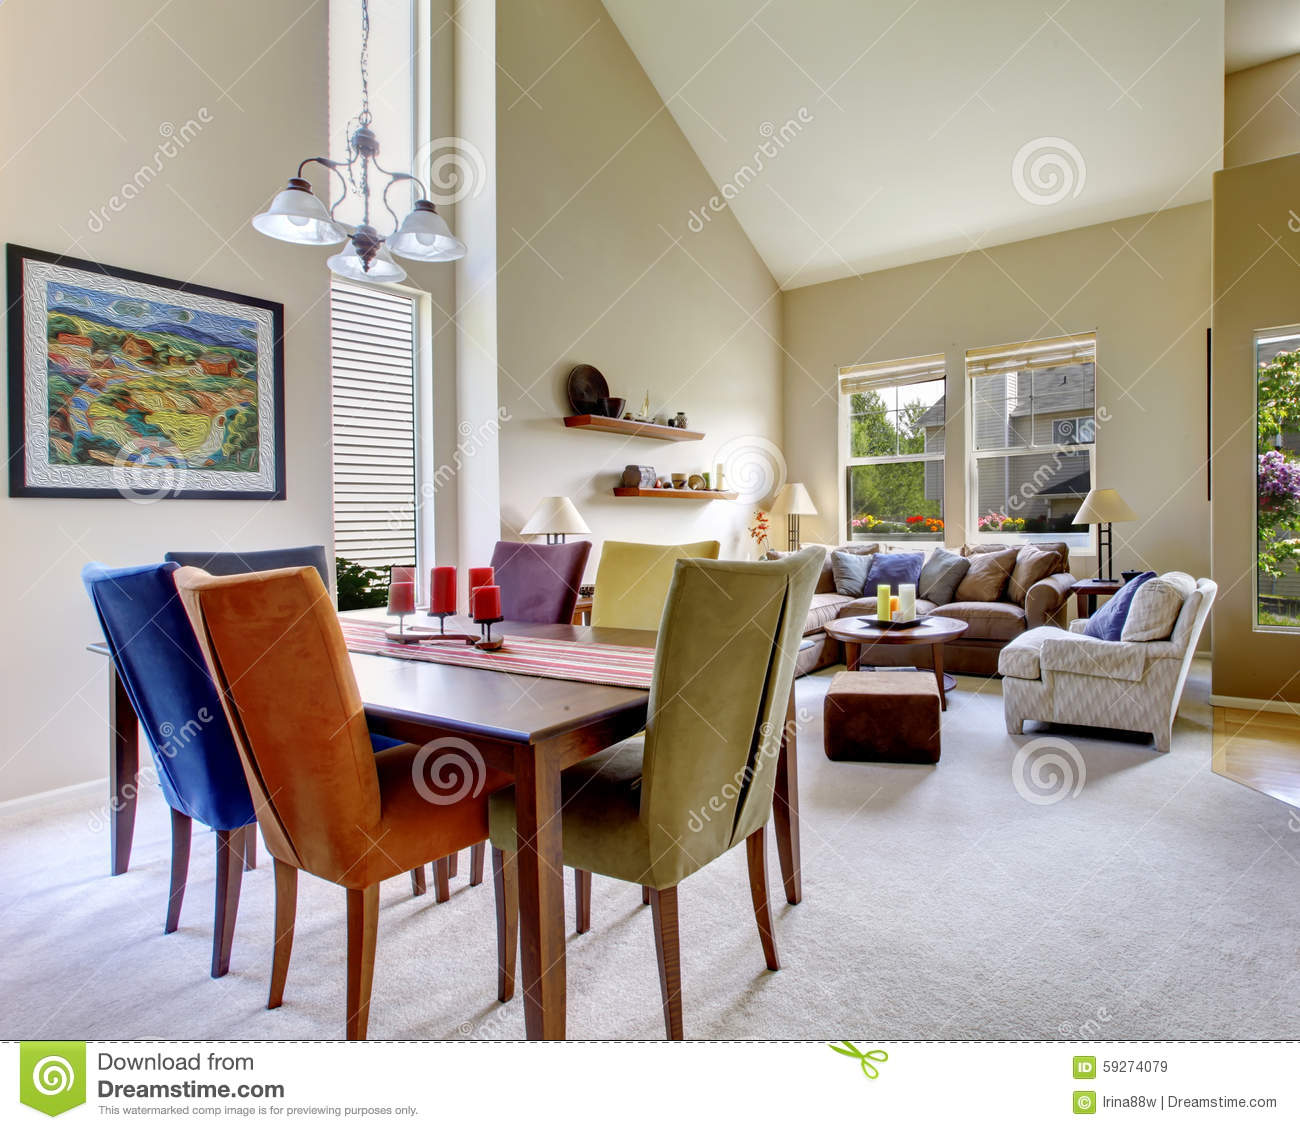 Large Beige Bright Living Room With Dining Table Different Color Chairs